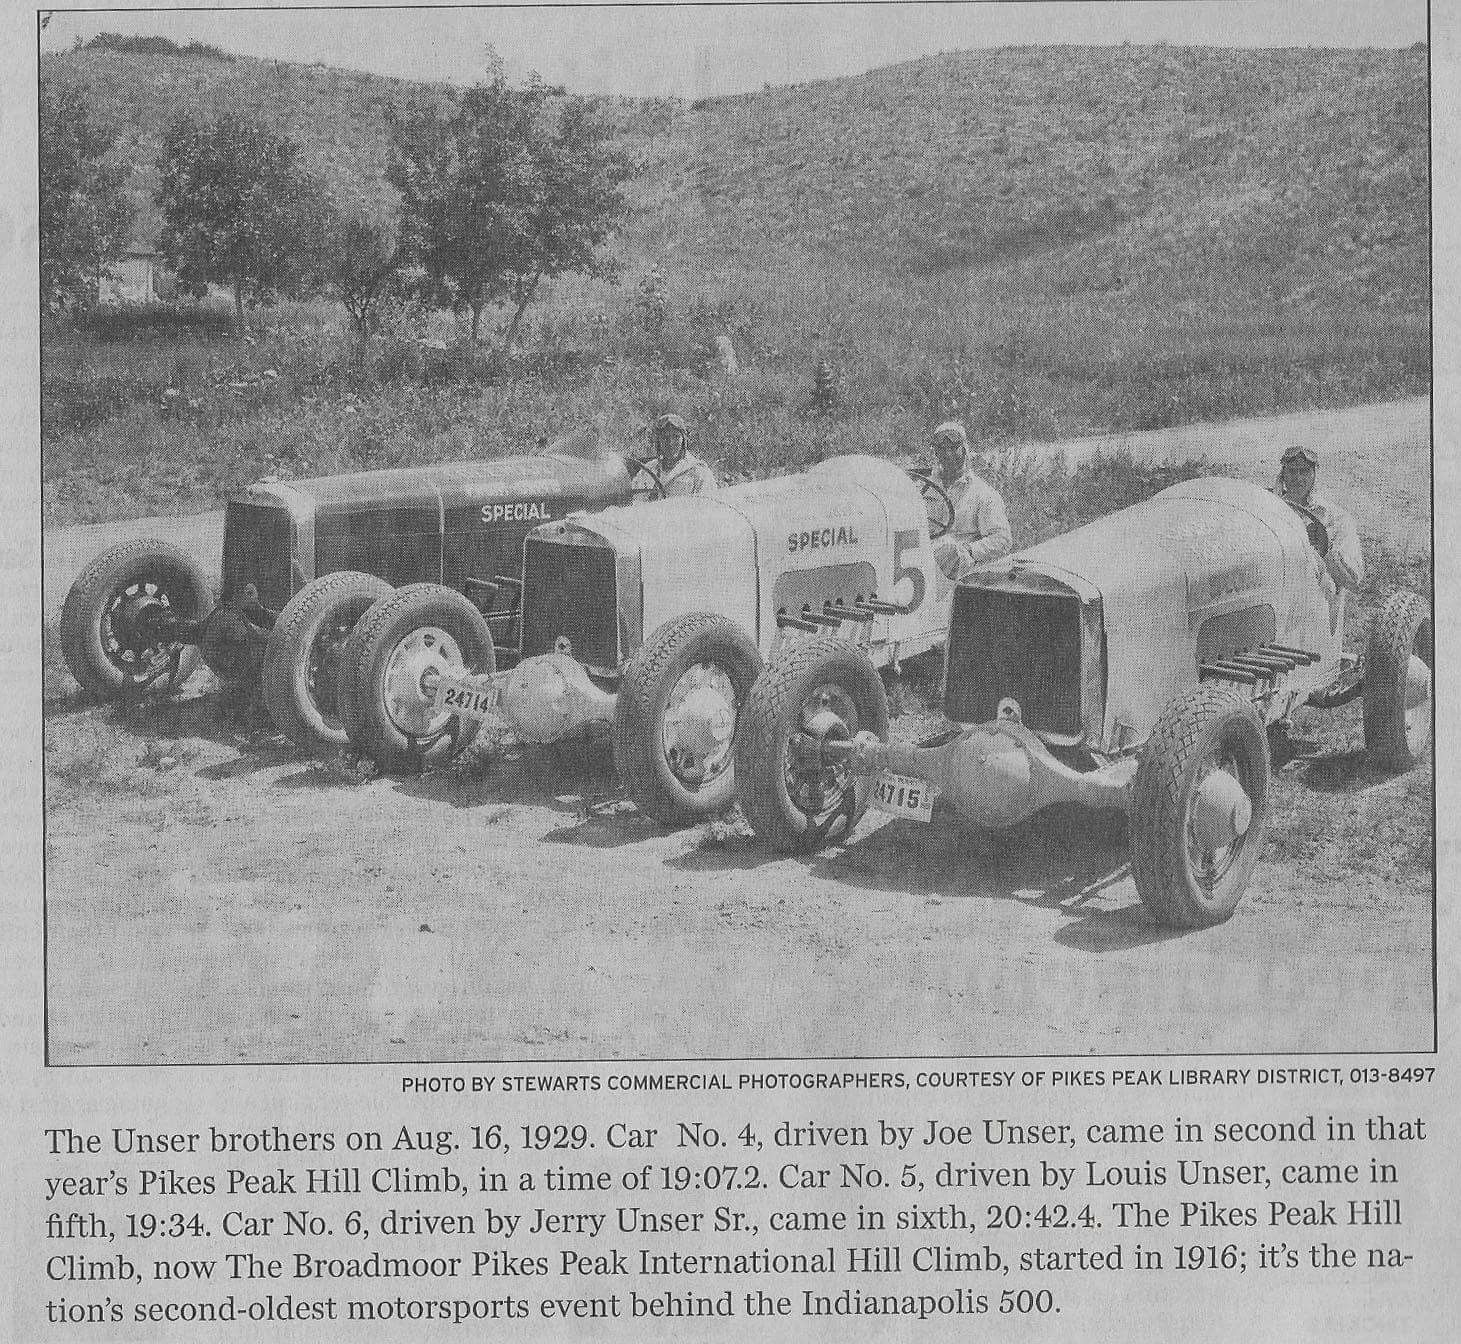 Unser Brothers In 1929 At Pikes Peak Hill Climb